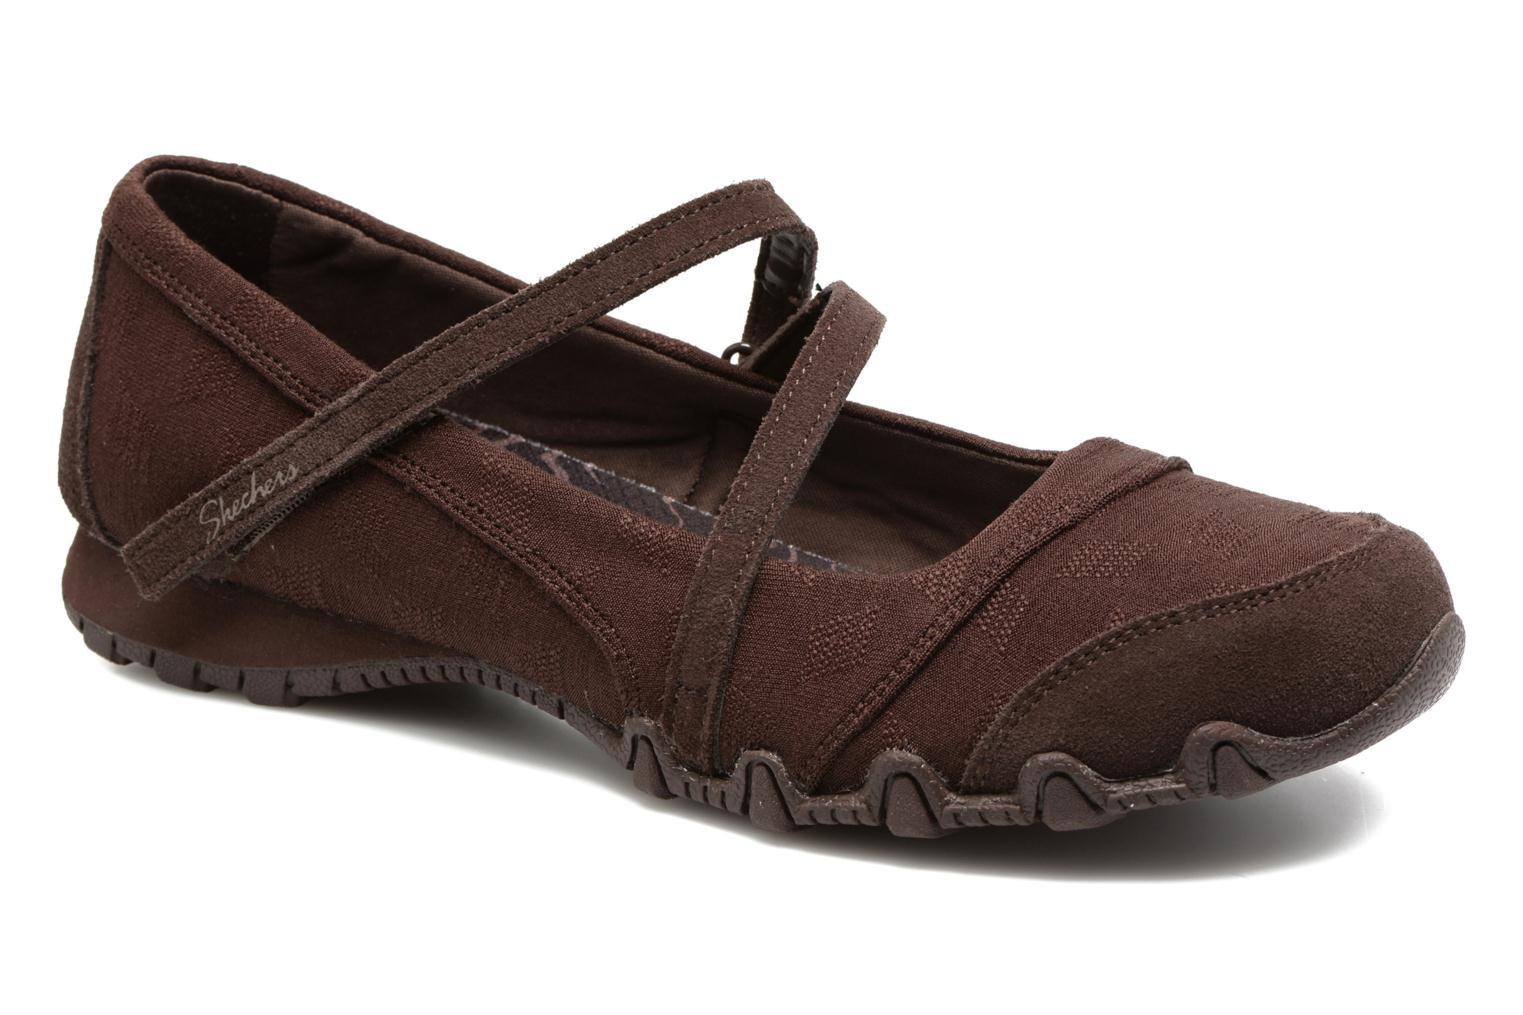 Ballerines Skechers Go step lite quaint Marron vue détail/paire